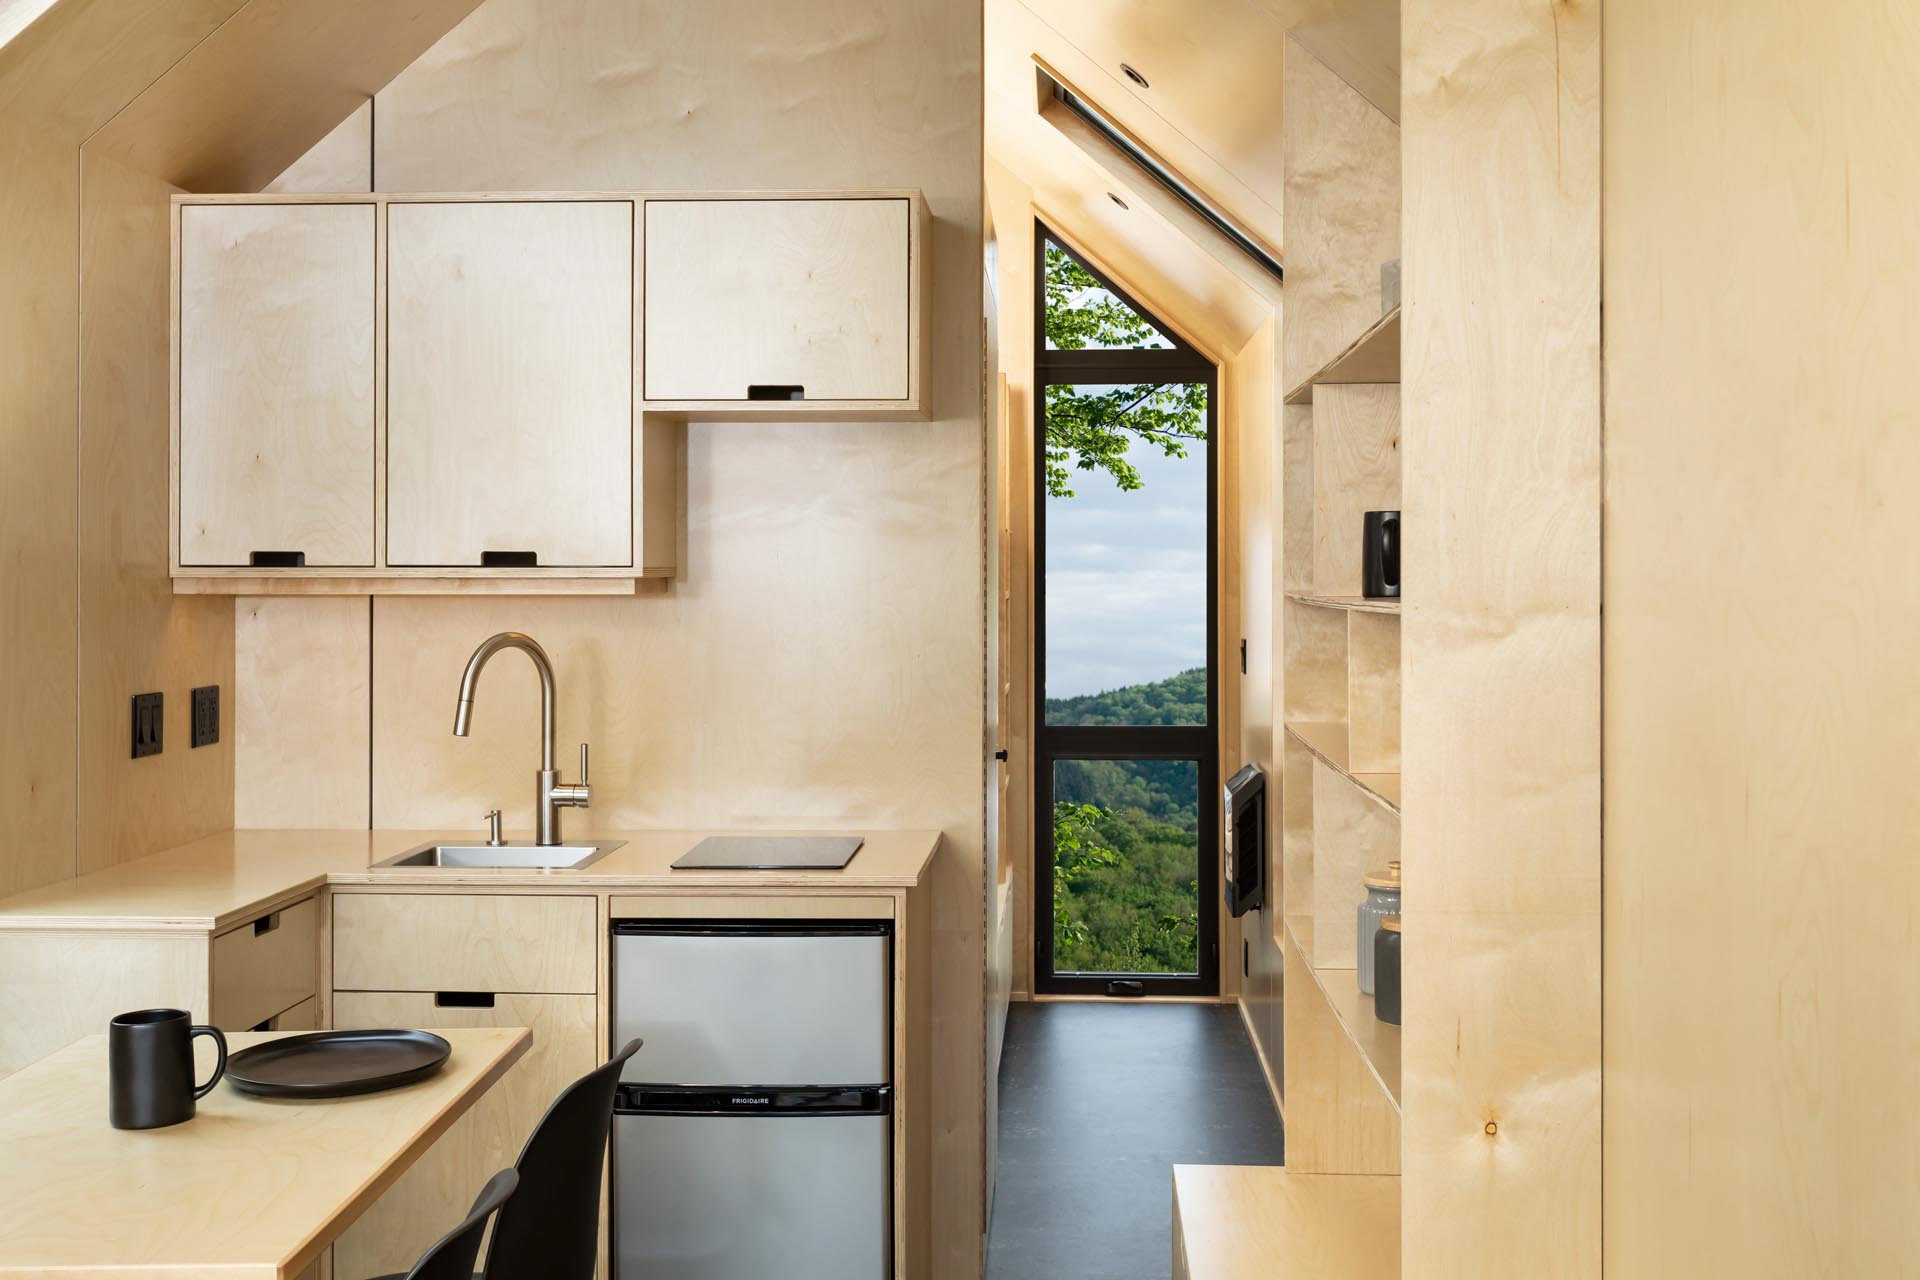 Pre-finished birch-faced plywood has been used in the kitchen of this tiny home to create the hardware free, soft close cabinets. There's also an electric refrigerator and induction single-burner cooktop.